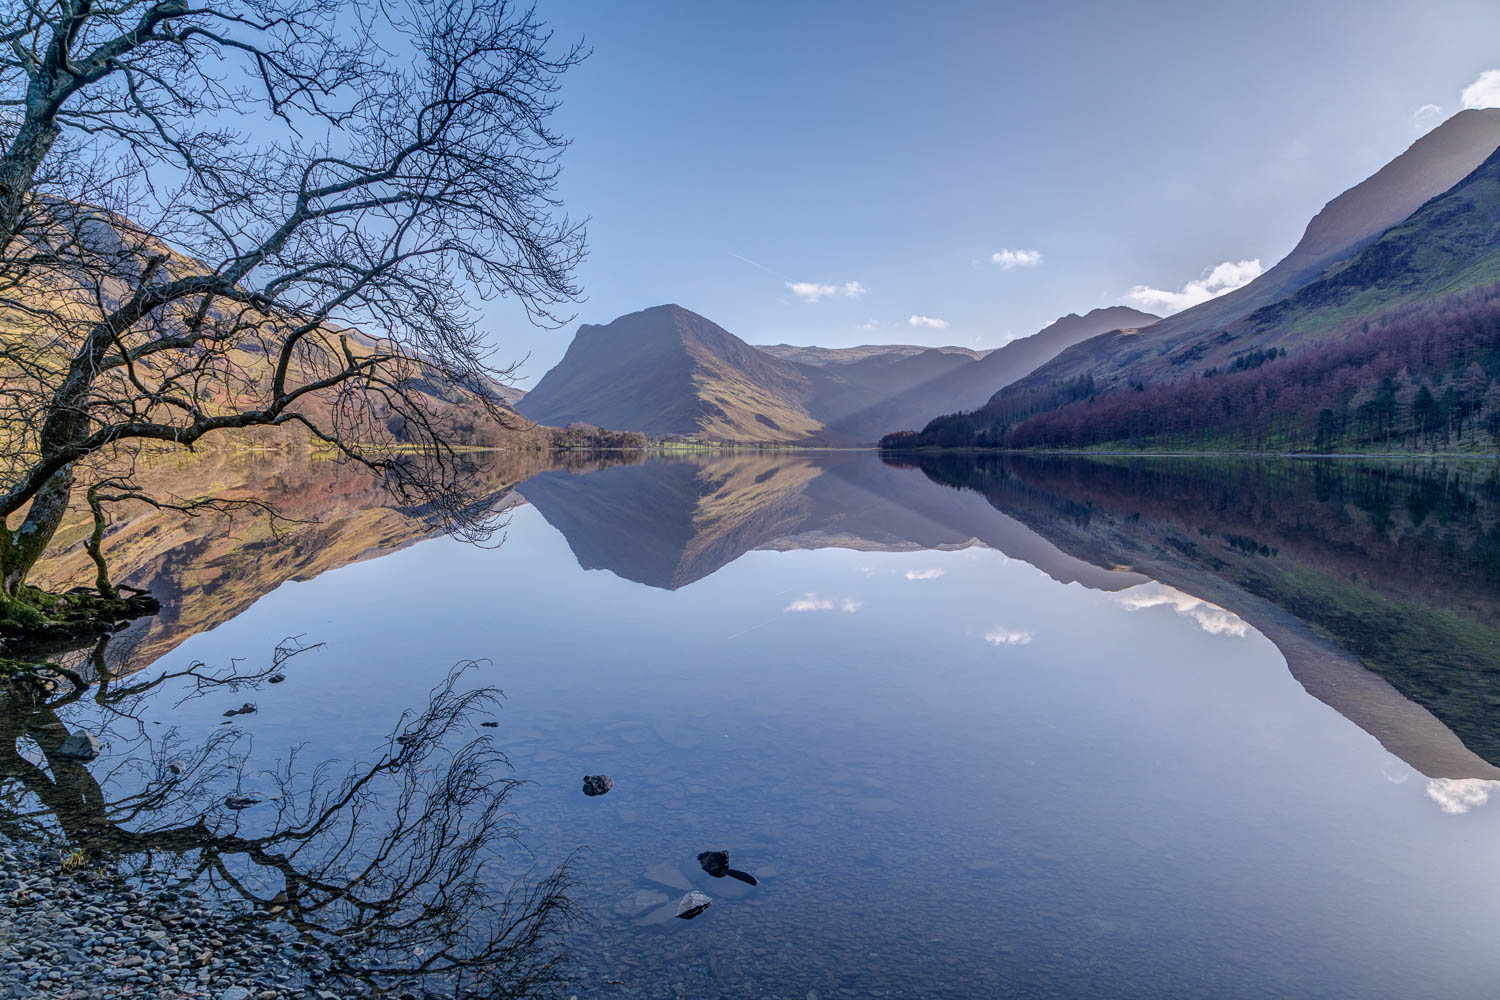 Buttermere, Fleetwith Pike, reflections